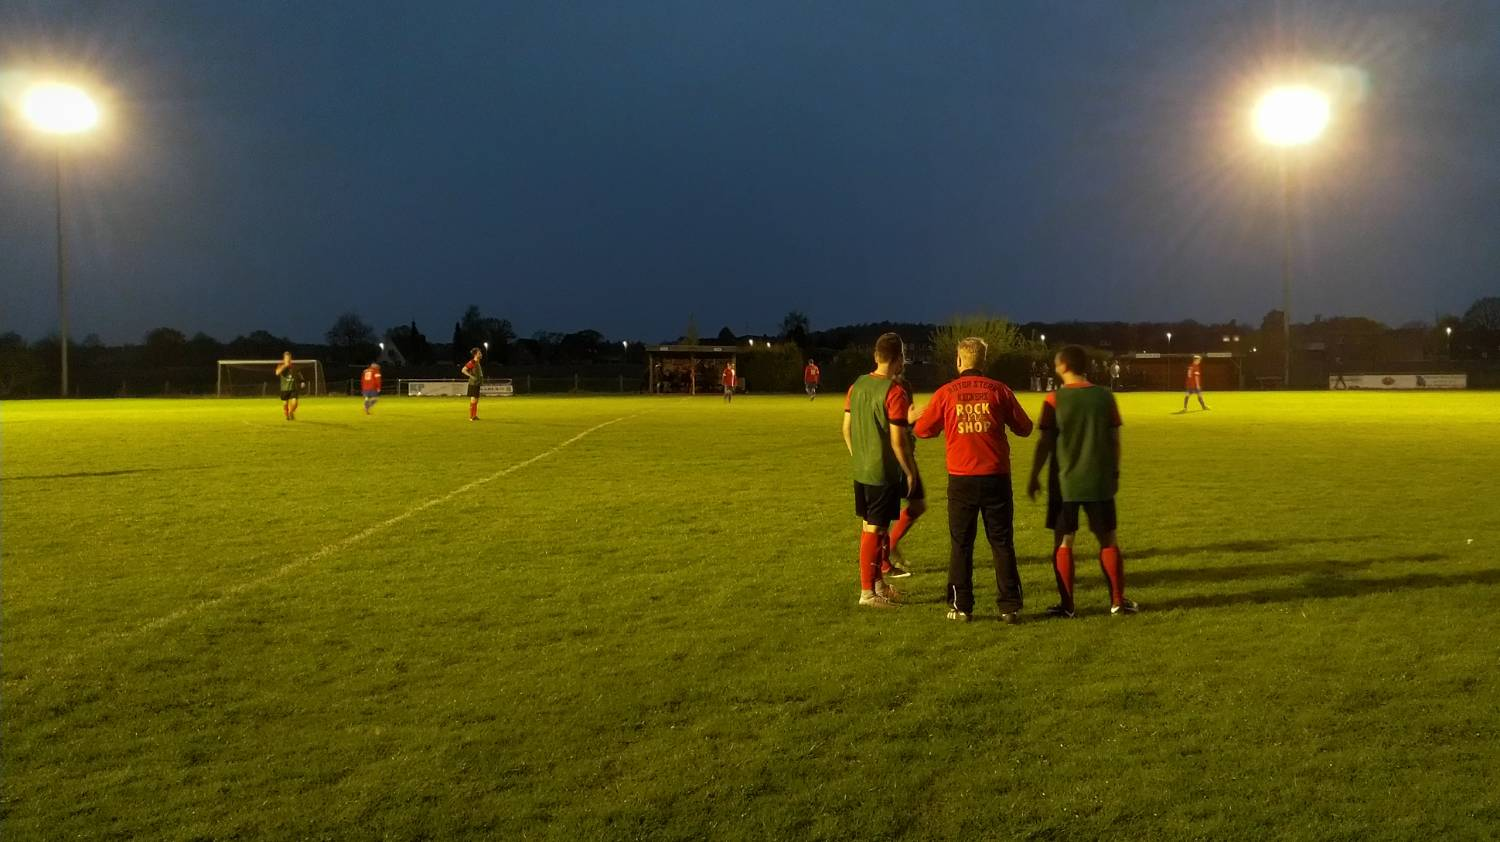 Vfr Todendorf 2 Vs Roter Stern Kickers 05 Taktikbesprechung Auswaerts 04 2018